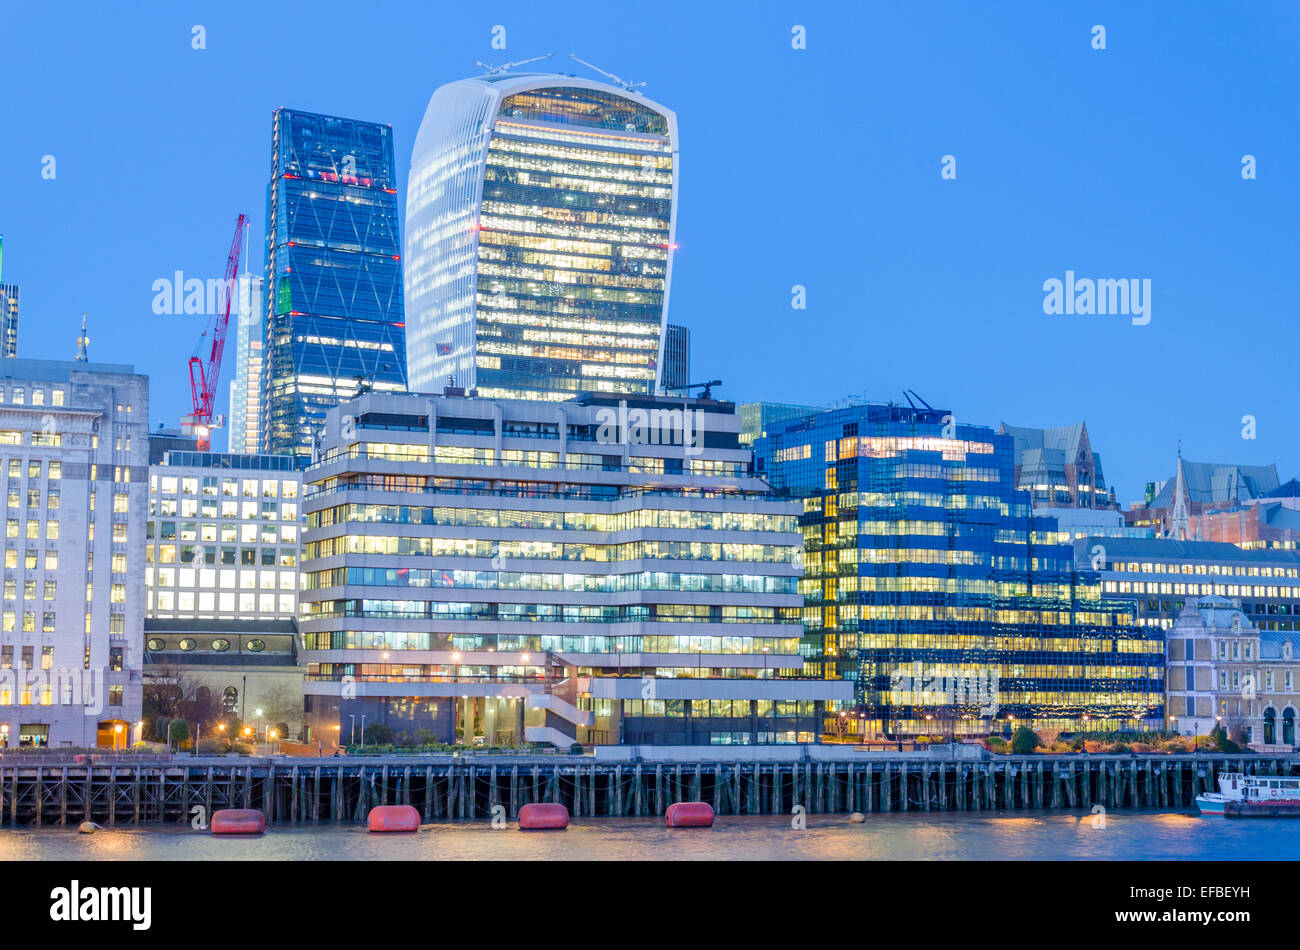 London skyline at night with the Cheesegrater and Walkie-Talkie buildings in view - Stock Image